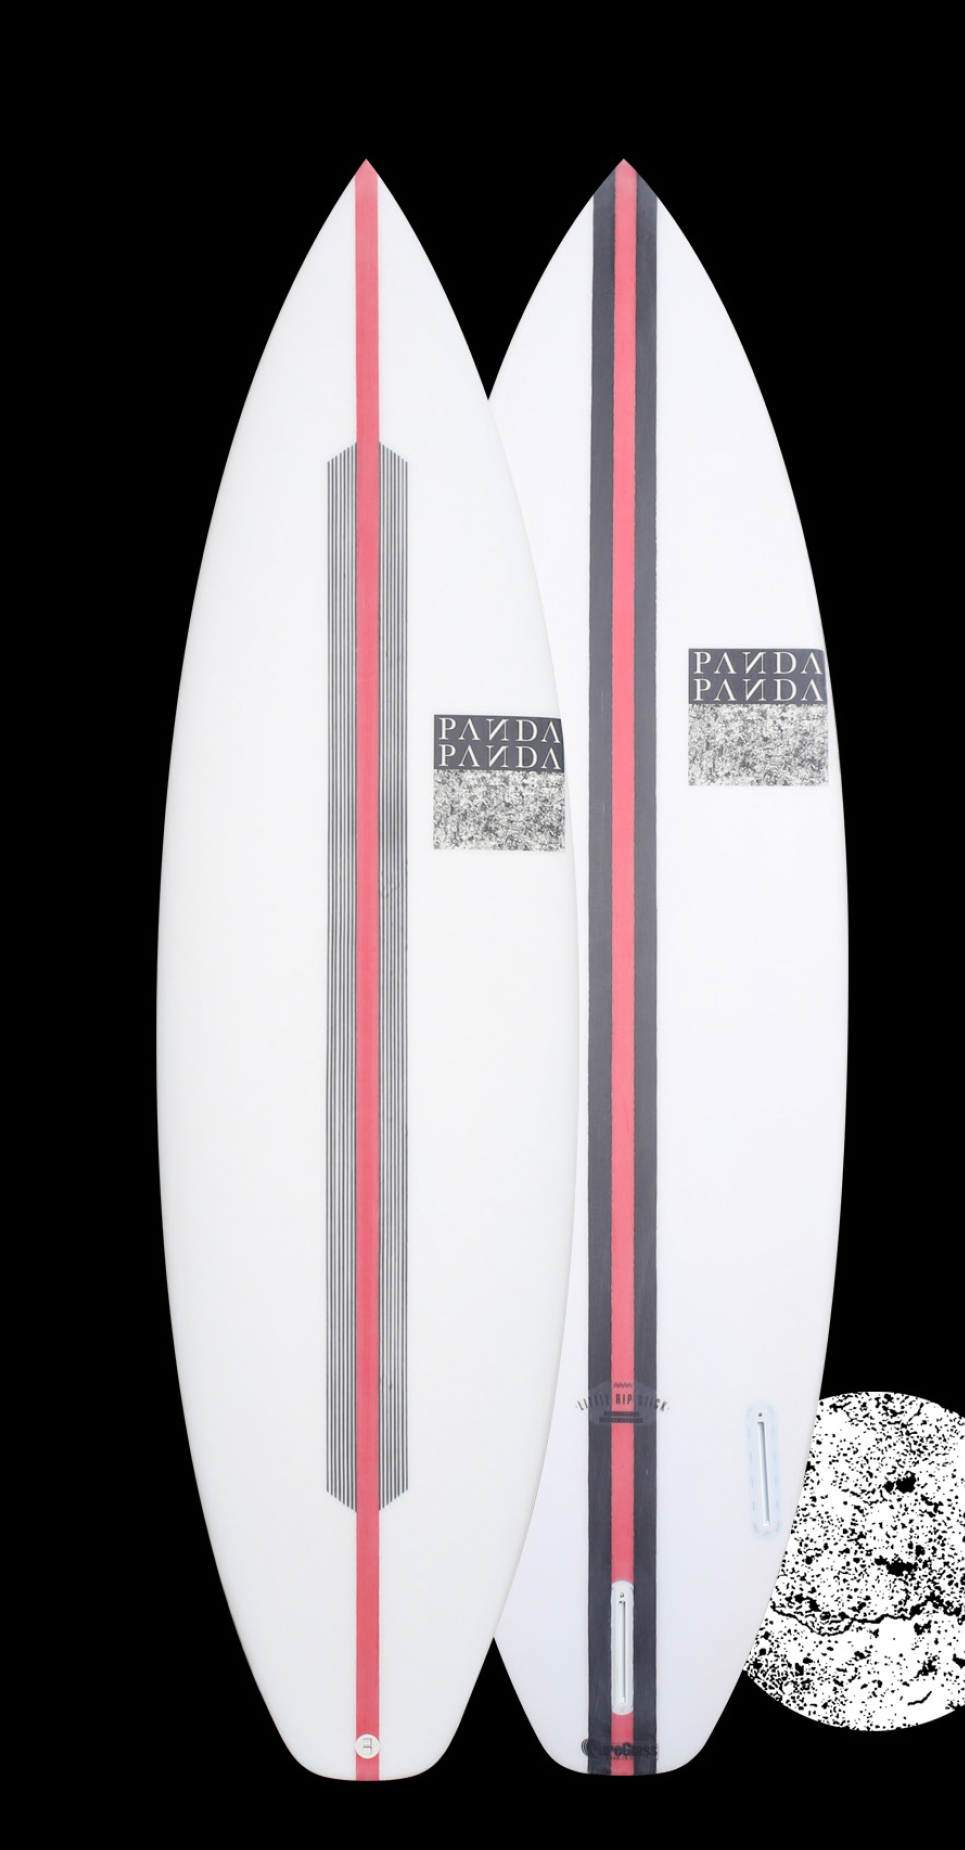 FVK   The FVK has an EPS core with a high density PU stringer lami  -   nated in X and S cloth for superior flex and compression strength using carbon panels to control and change the flex pattern for a superior board with flex and drive where you want it and that extra bit of spark. All Panda models are available in FVK Tech.